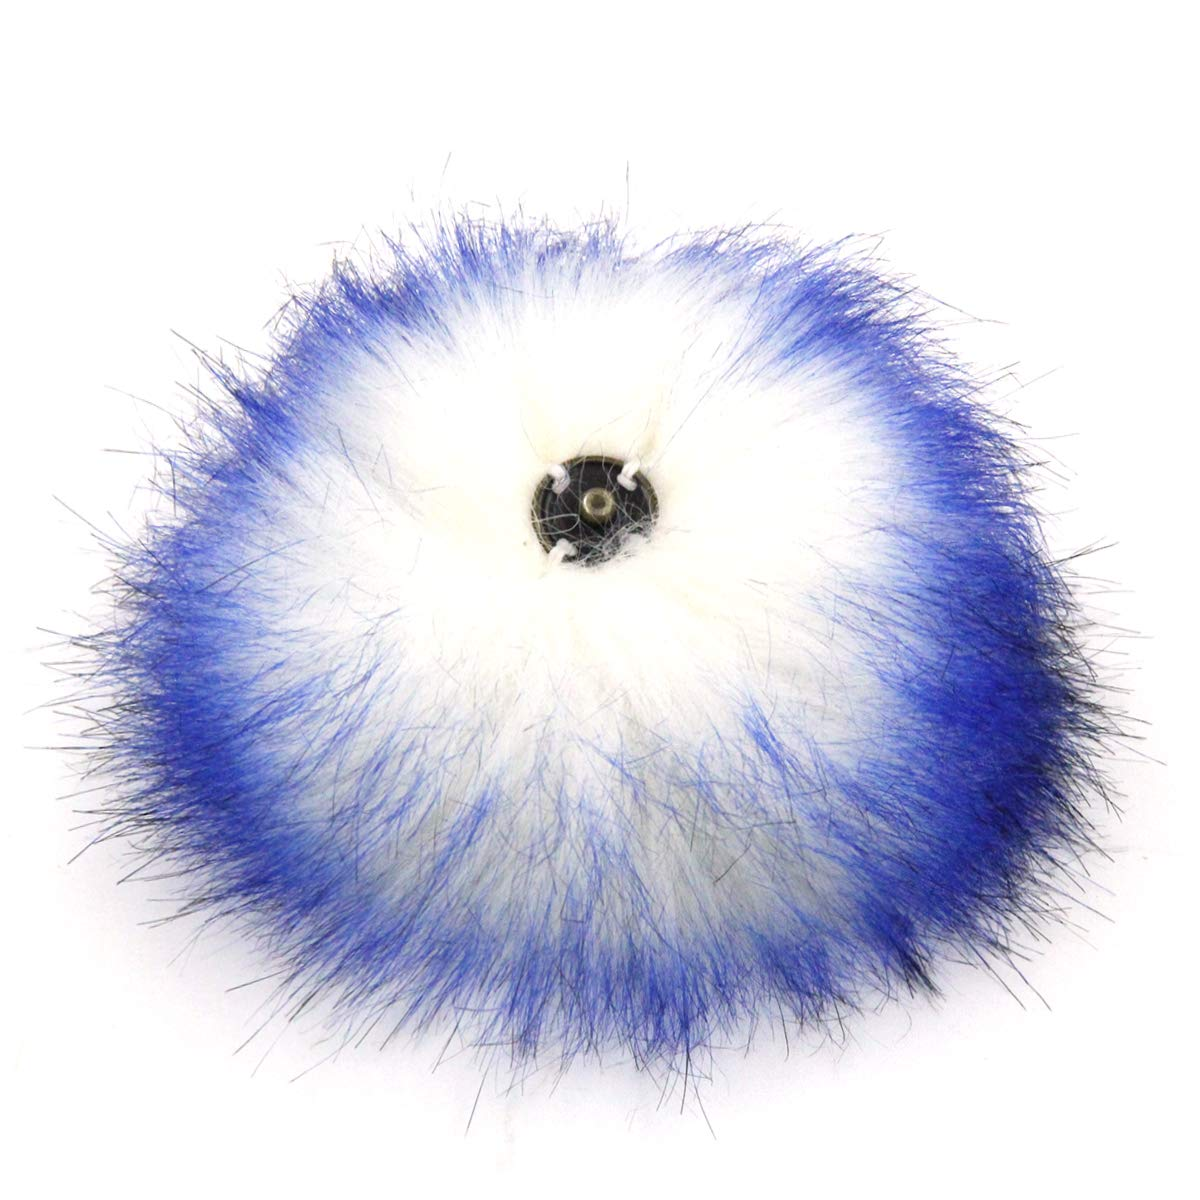 Furling Pompoms Faux Fox Fur Removable Pom Poms Ball with Press Button for Knitting Hats Mixed Colors 12pcs 4.7 Inches